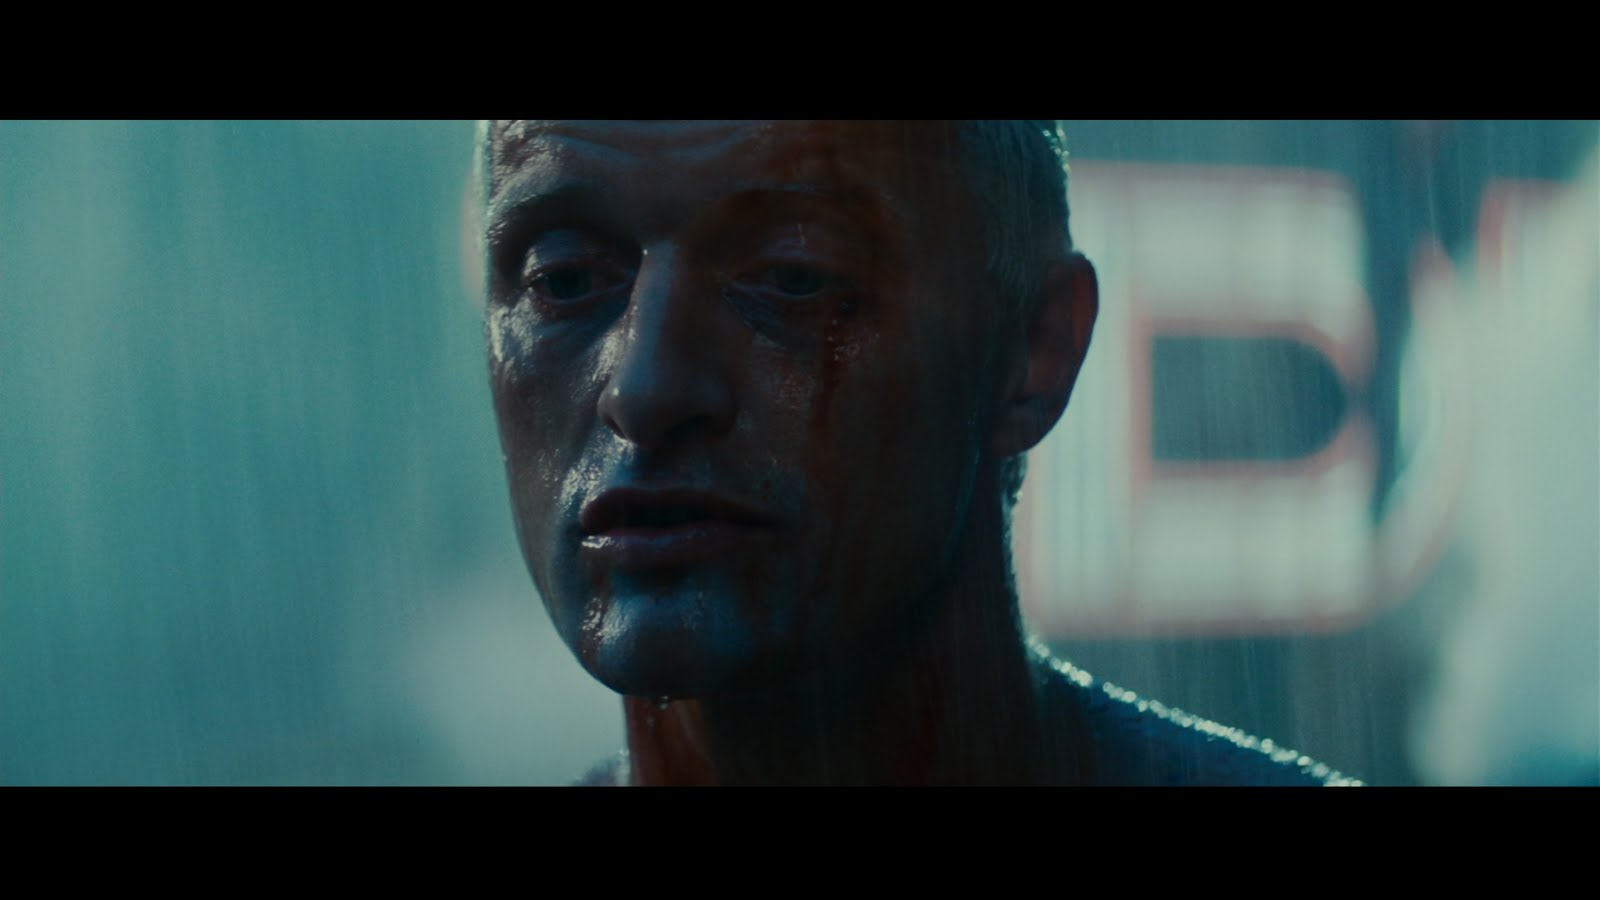 an examination of the film blade runner Blade runner, directed by ridley scott, was originally released in june of   illustrated—examination of blade runner by one of the film's most.